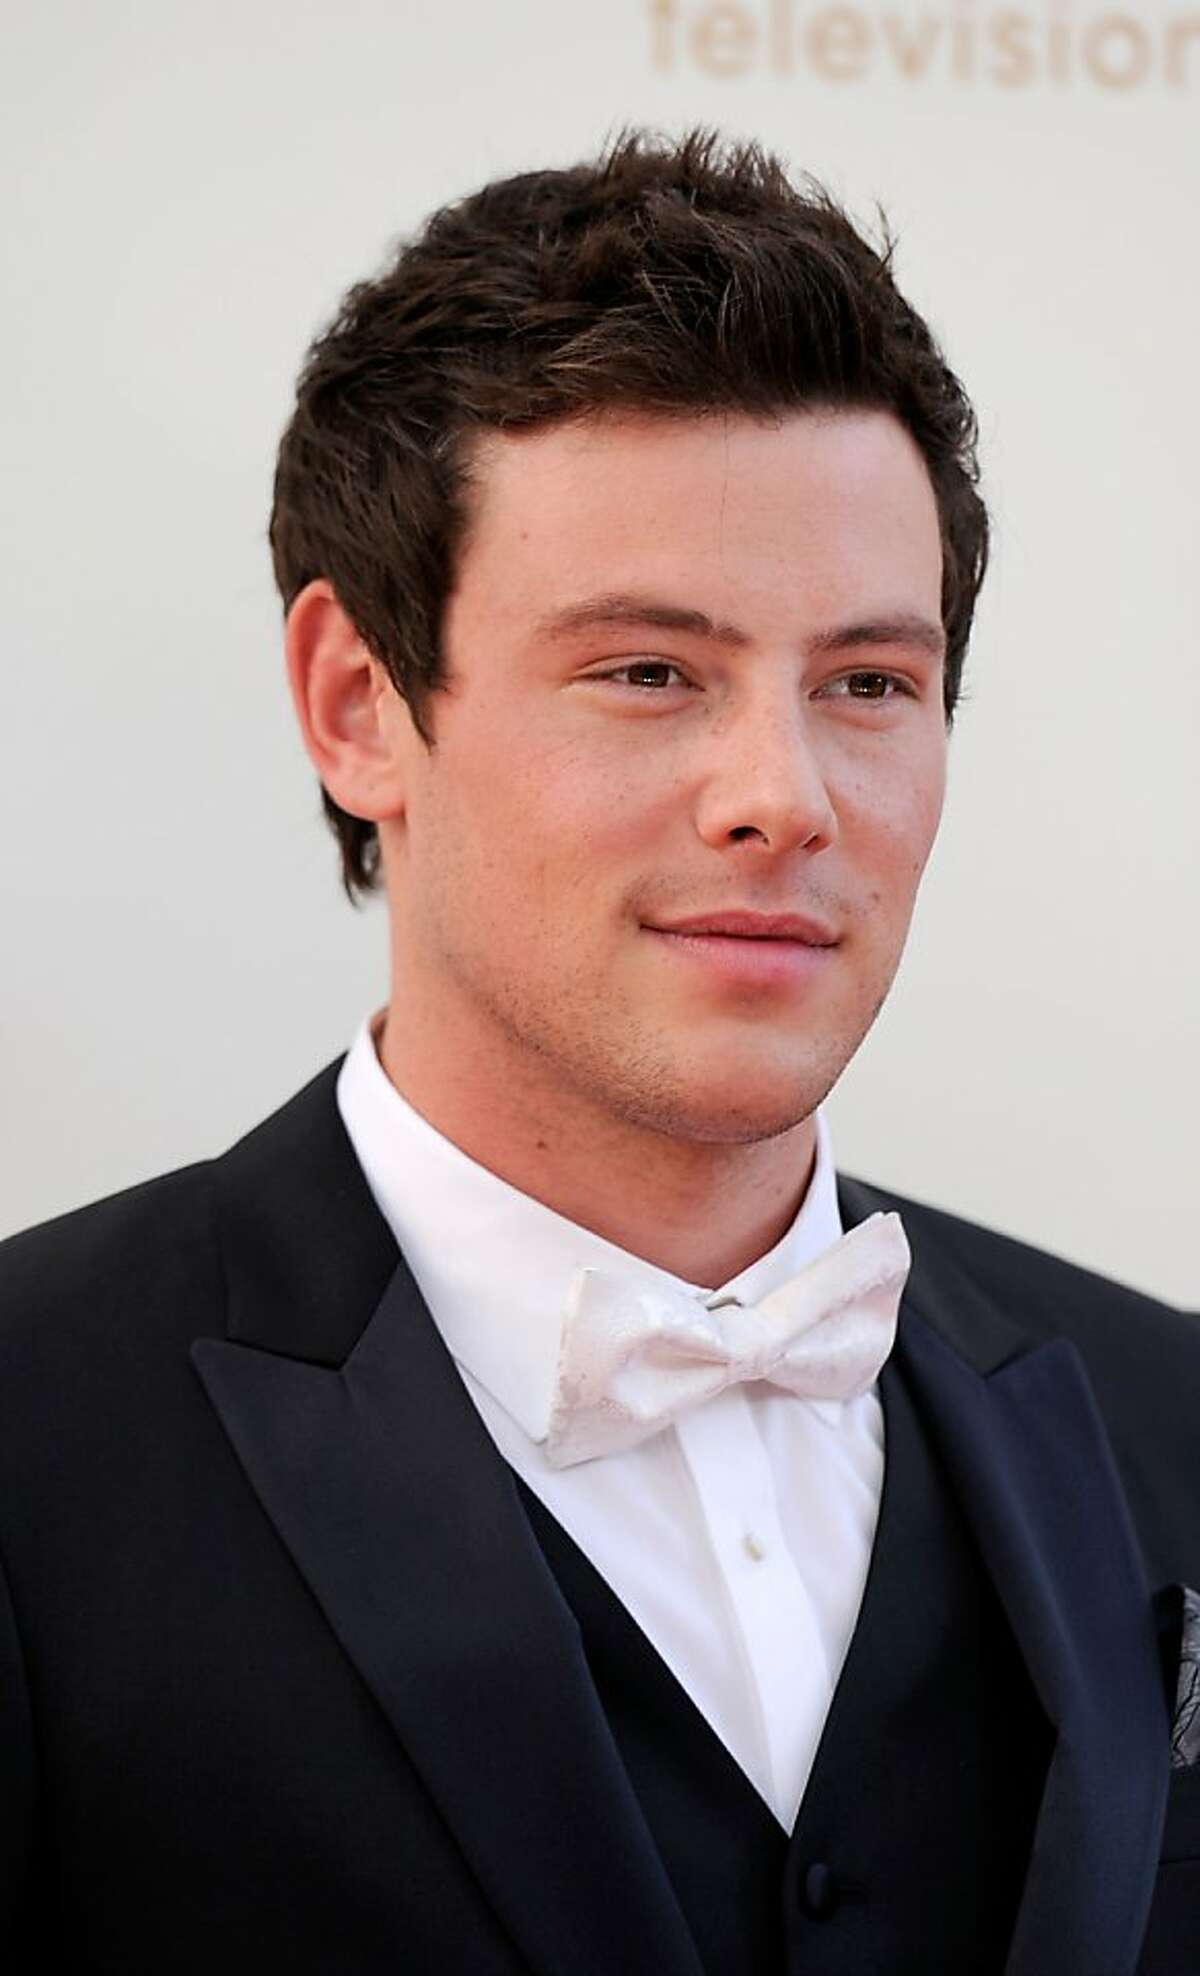 LOS ANGELES, CA - SEPTEMBER 18: Actor Cory Monteith arrives at the 63rd Annual Primetime Emmy Awards held at Nokia Theatre L.A. LIVE on September 18, 2011 in Los Angeles, California. (Photo by Frazer Harrison/Getty Images)